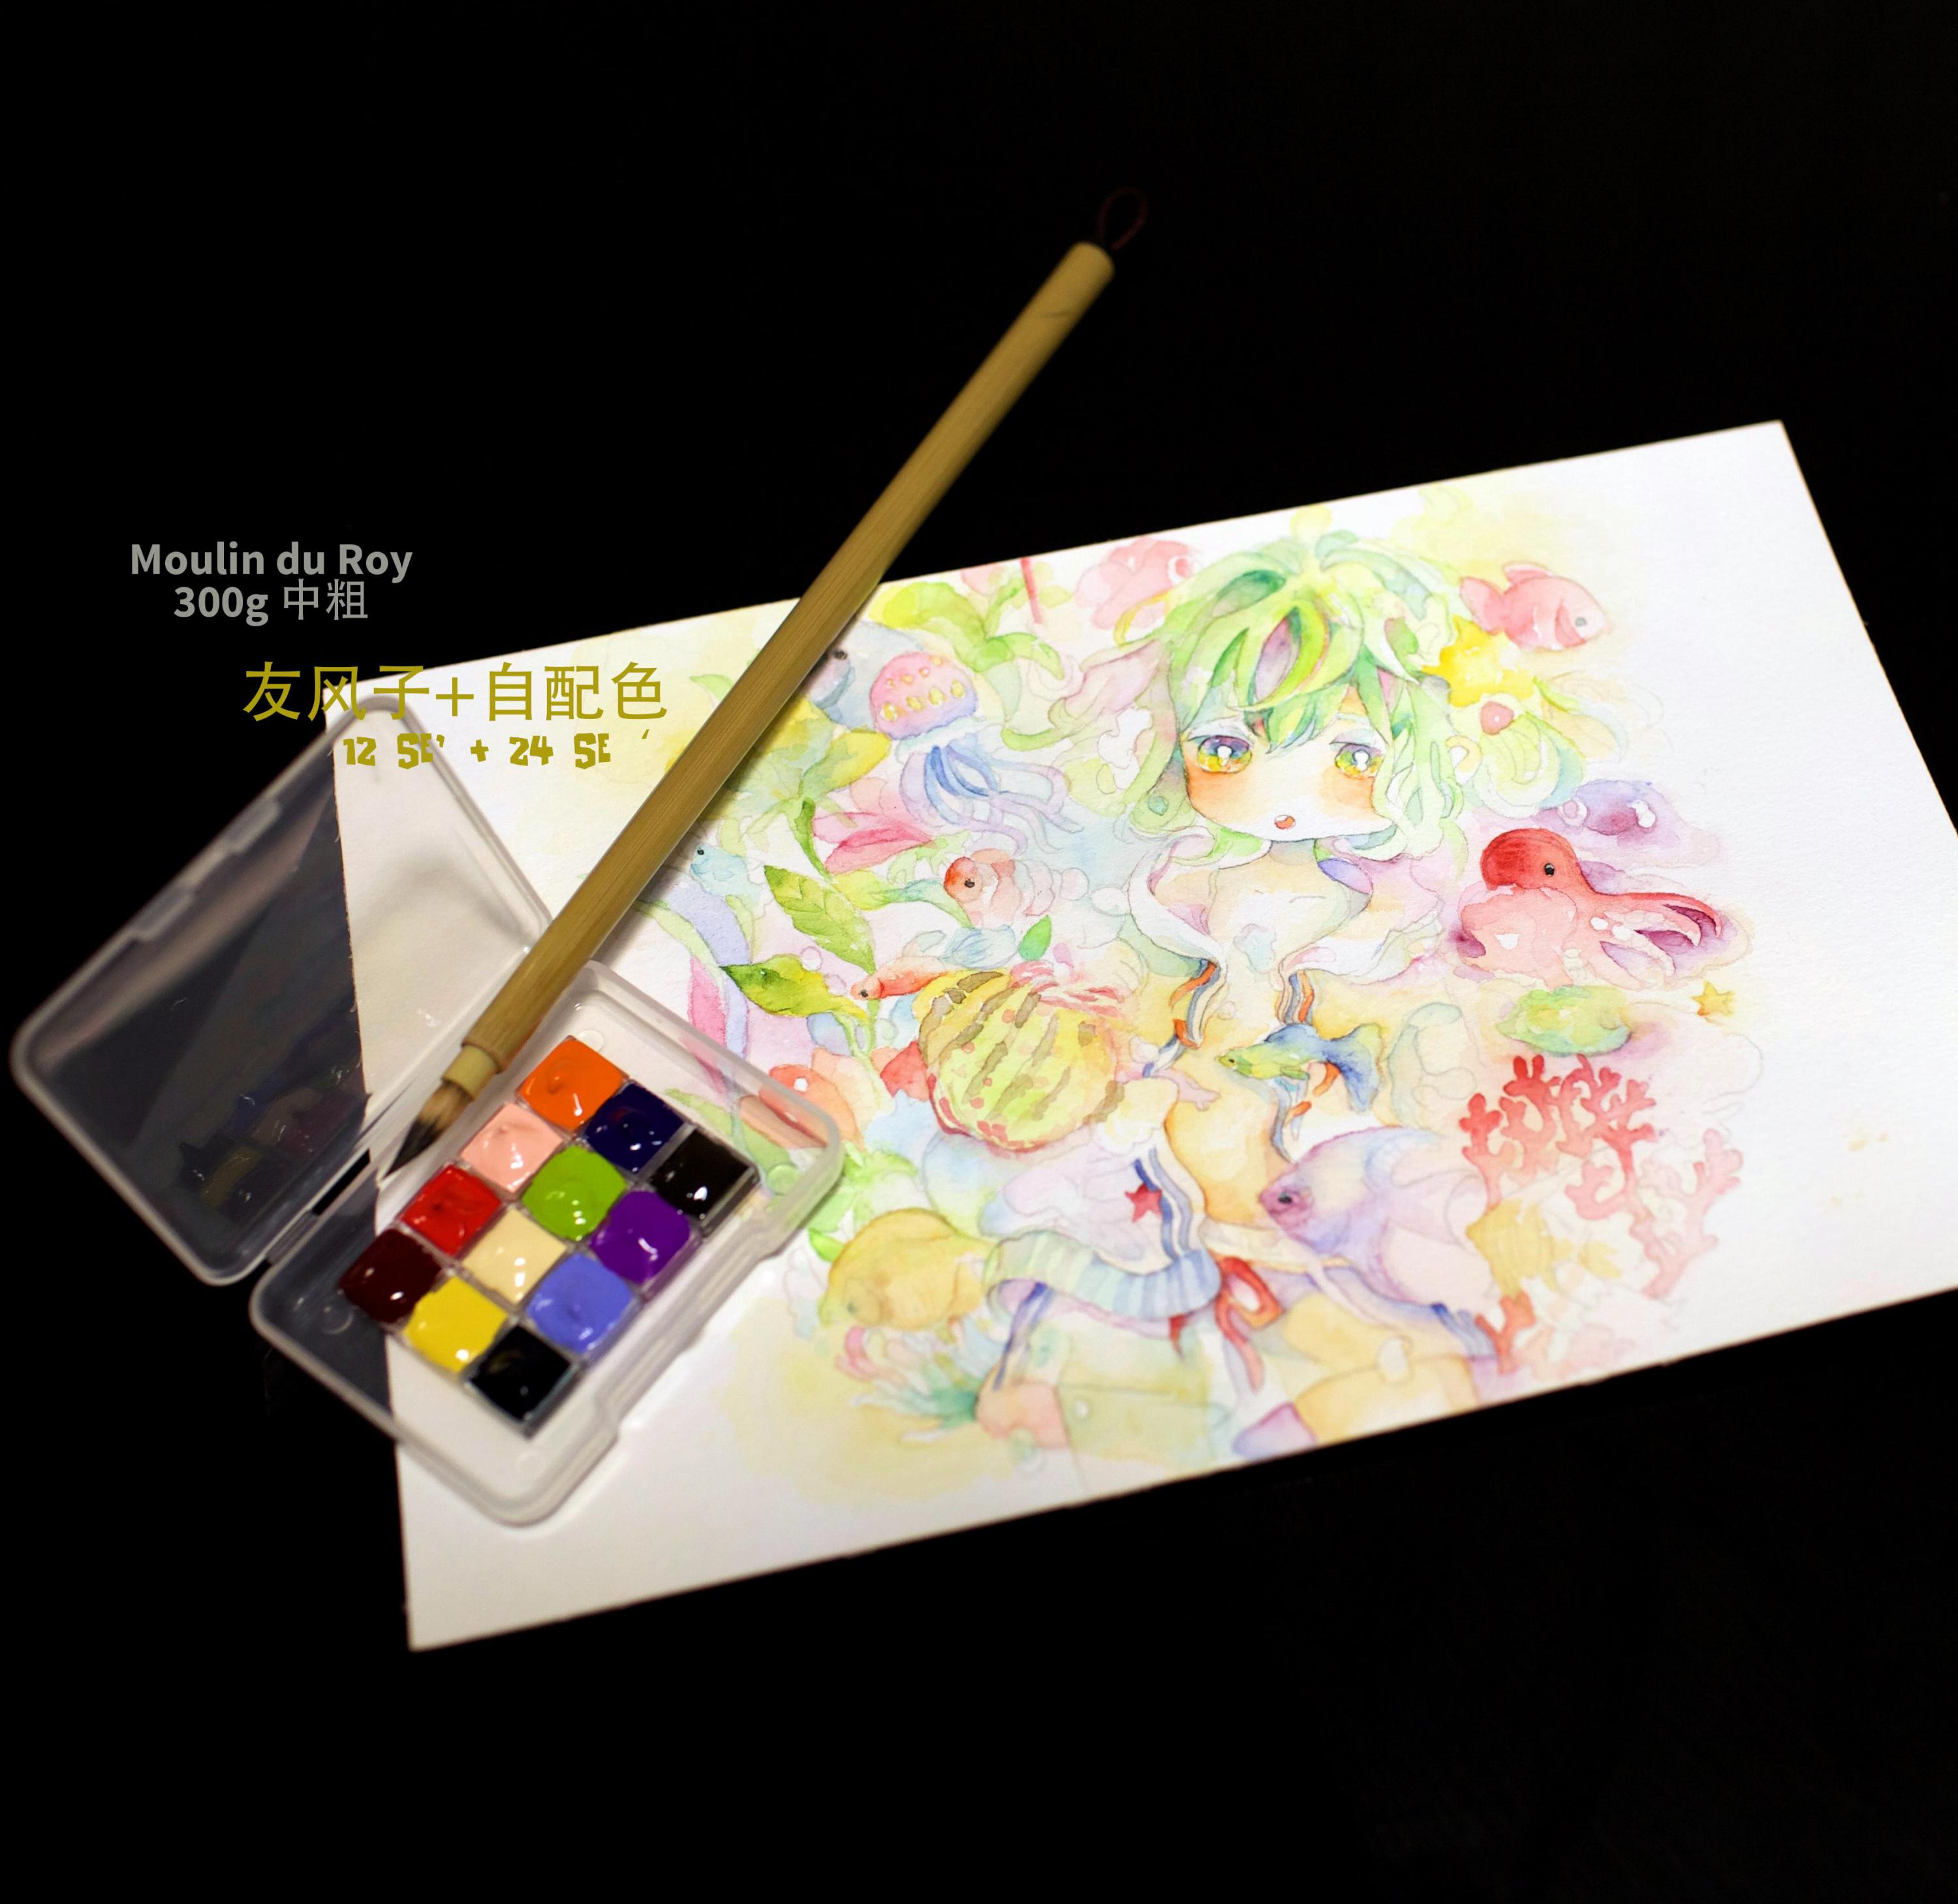 Japan HB Holbein friendly wind self-matching 24 colors expert grade watercolor pigment packaging Dispensing plate Watercolour japan holbein expert level transparent watercolor seven gods 12 colors 1 2ml solid watercolor trial tray dispensing plate